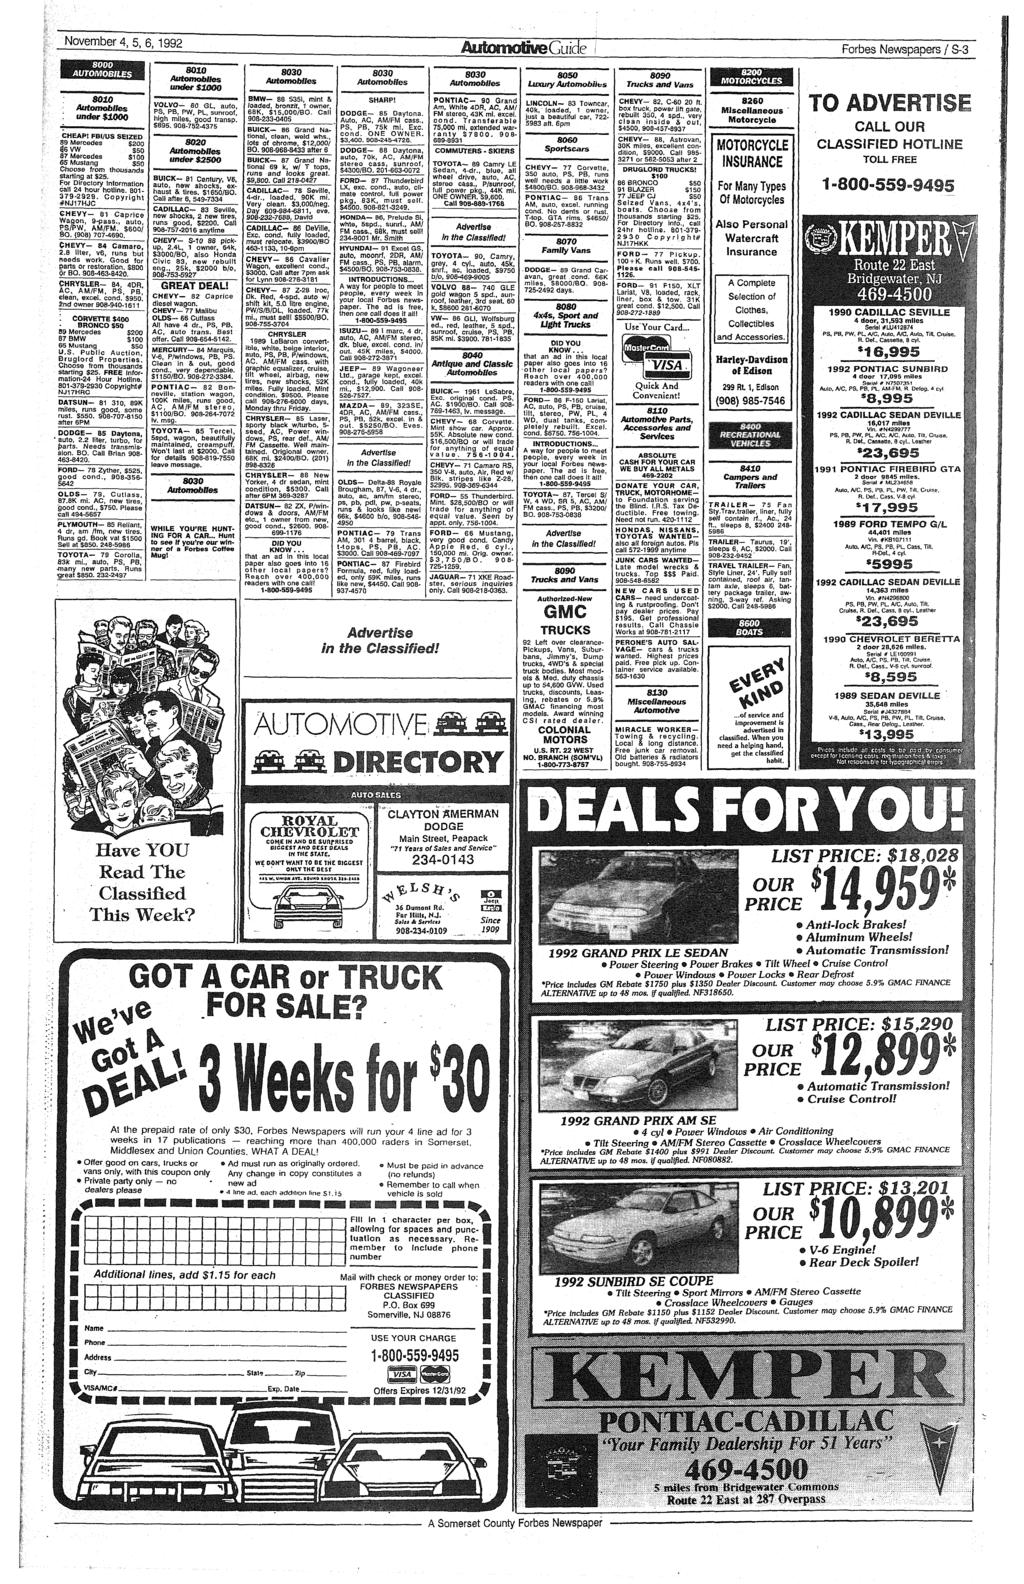 » November 4, 5, 6,1992 m AUTOMOBILES 8010 Automobiles under$1000 CHEAP! FBI/US SEIZED 89 Mercedes $200 $6VW S50 87 Mercedes $100 65 Mustang $50 Choose from thousands starting at S25.